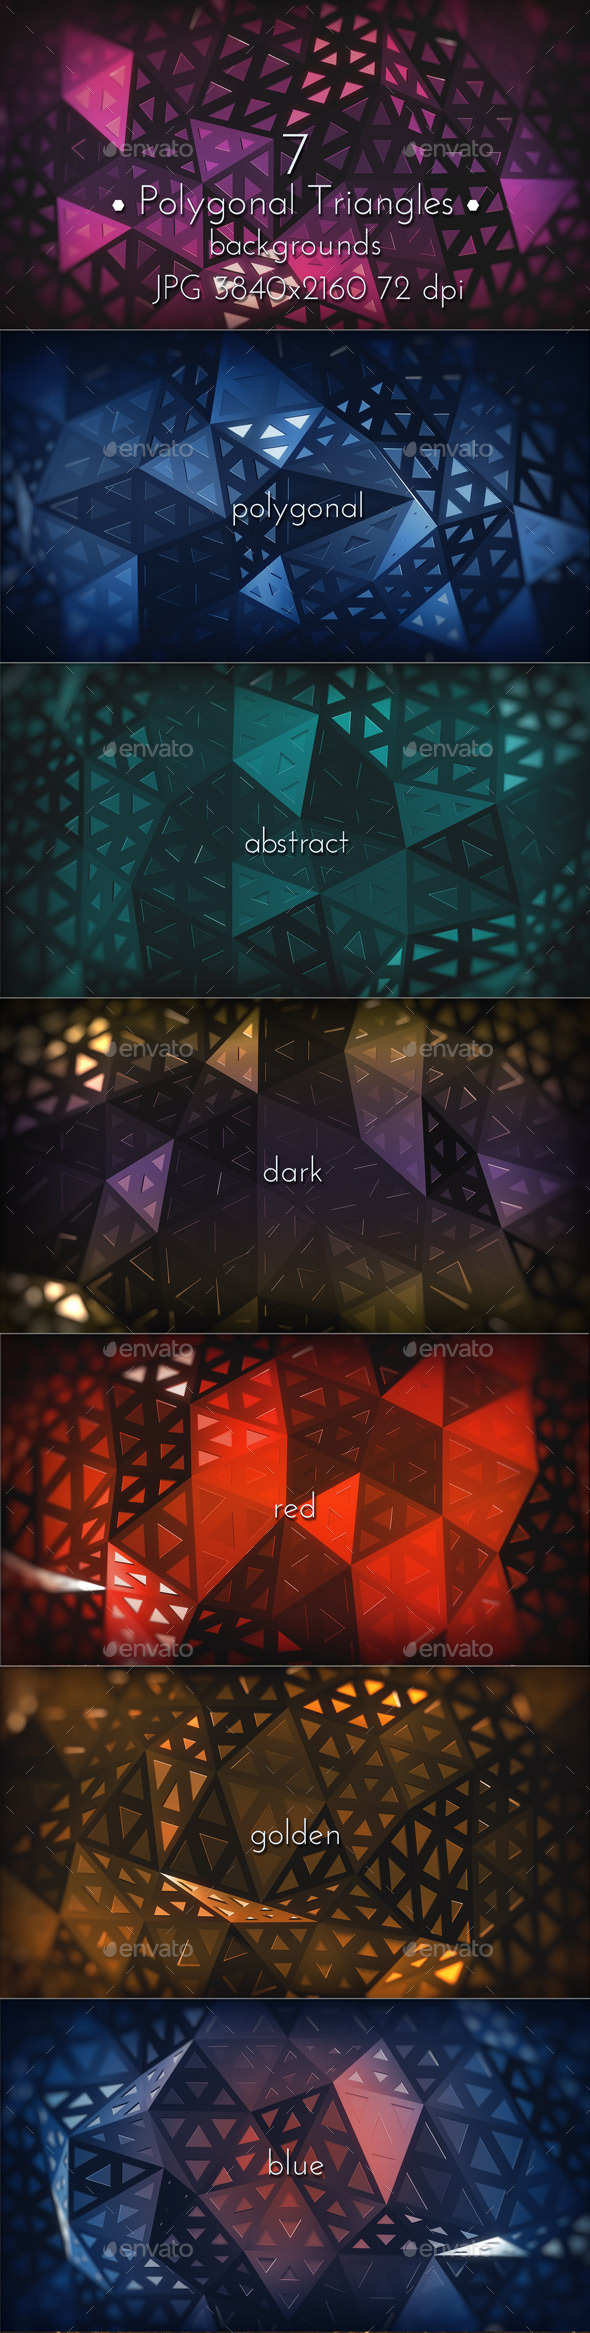 Polygonal Triangles Background